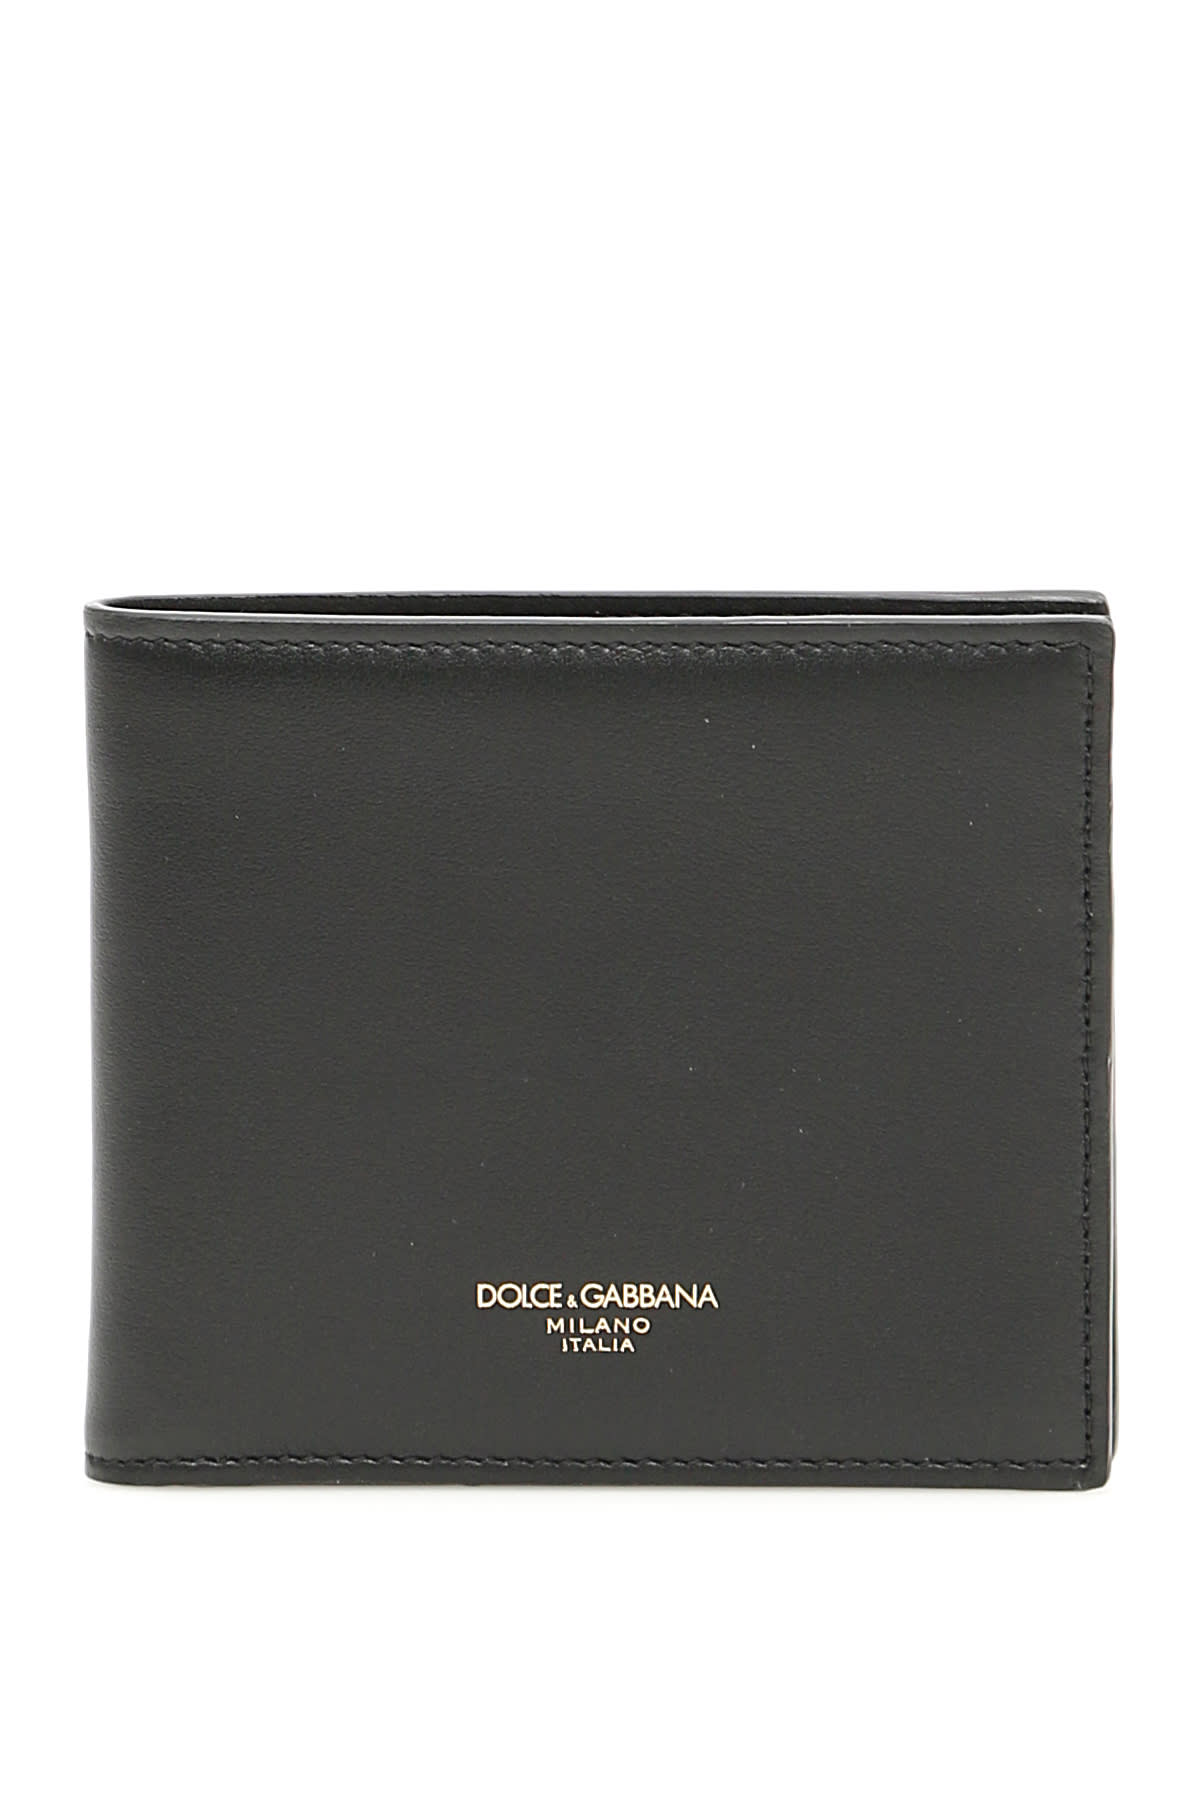 Dolce & Gabbana LEATHER BIFOLD WALLET